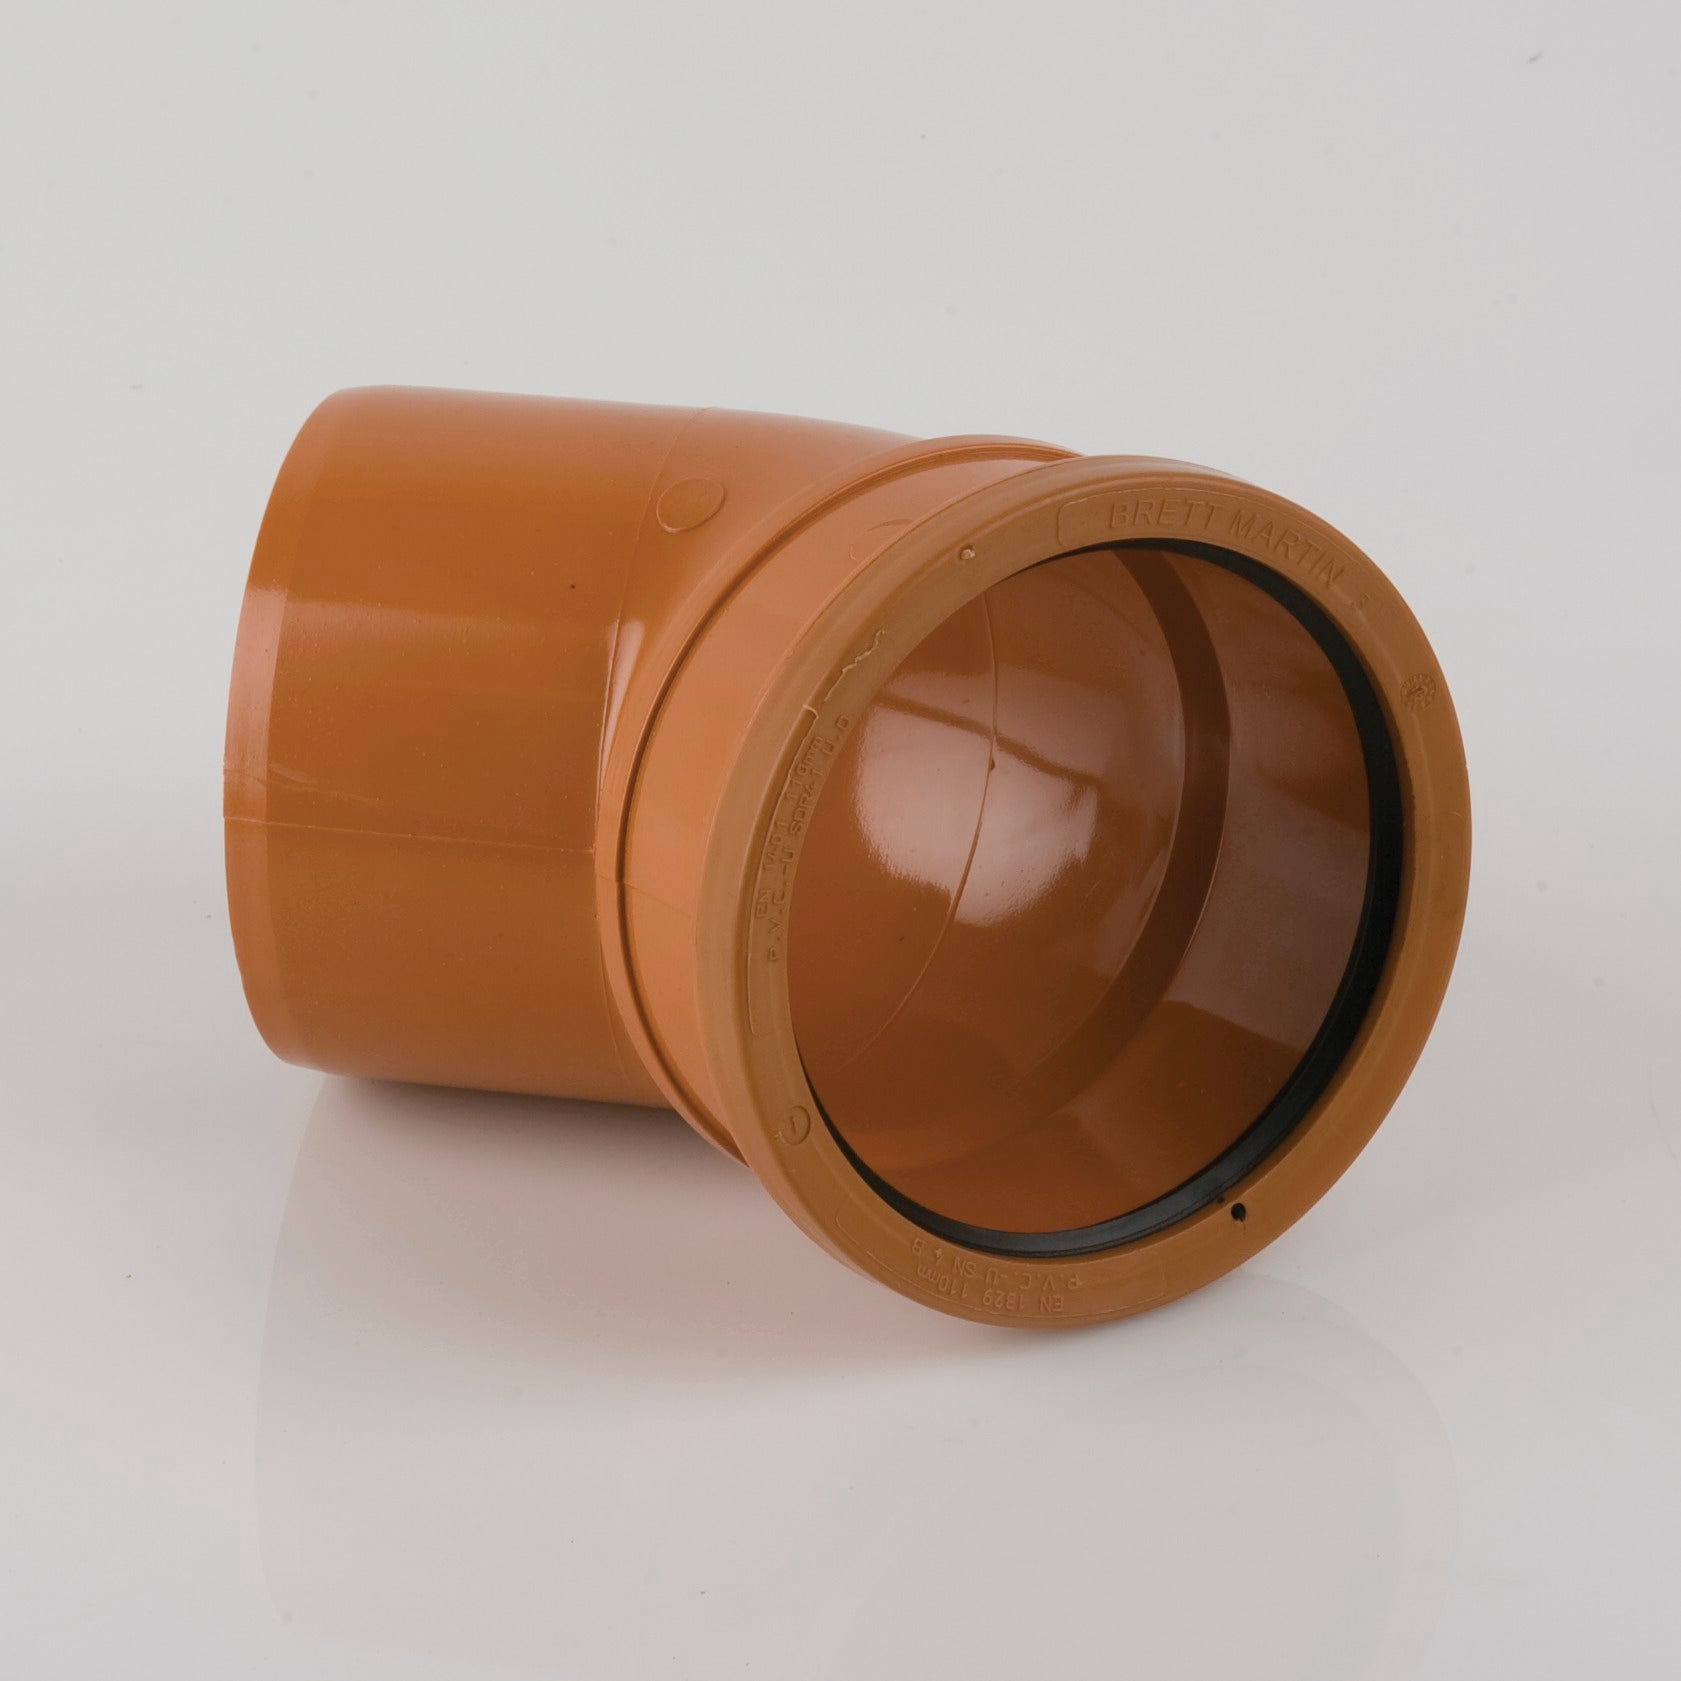 45 Degrees 110mm Single Socket Pipe Bend (Terracotta Orange)